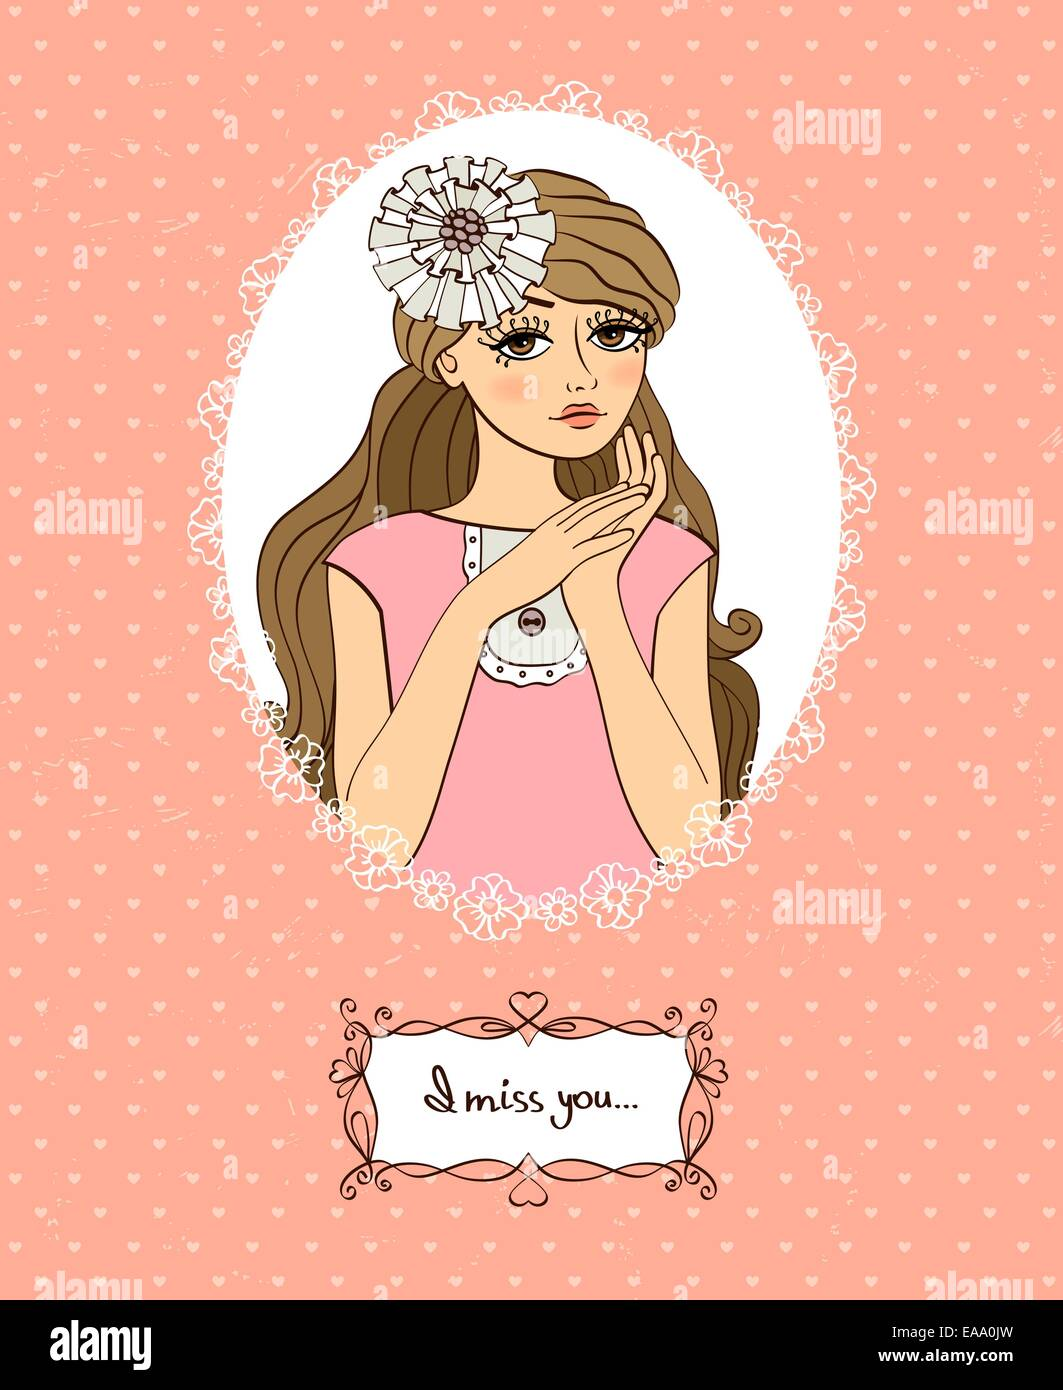 I Miss You Valentines Card With Cute Girl And Love Message Vector